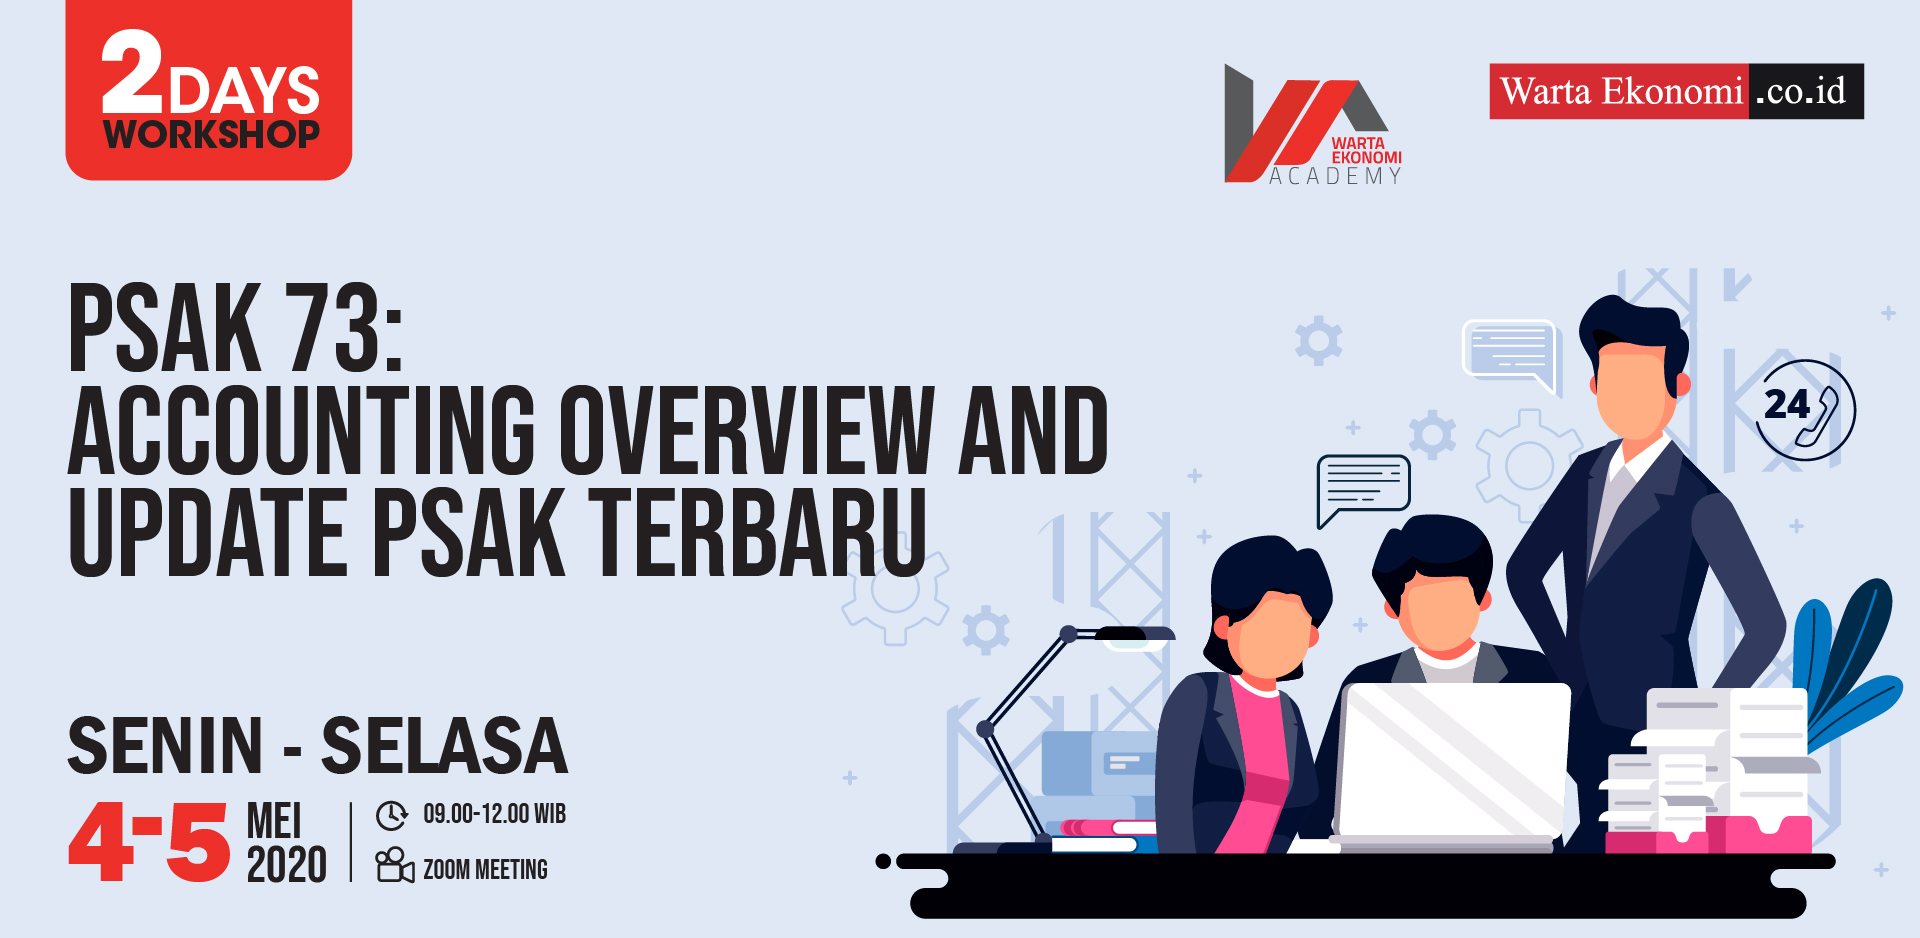 PASK 73 : Accounting Overview and Update PSAK Terbaru